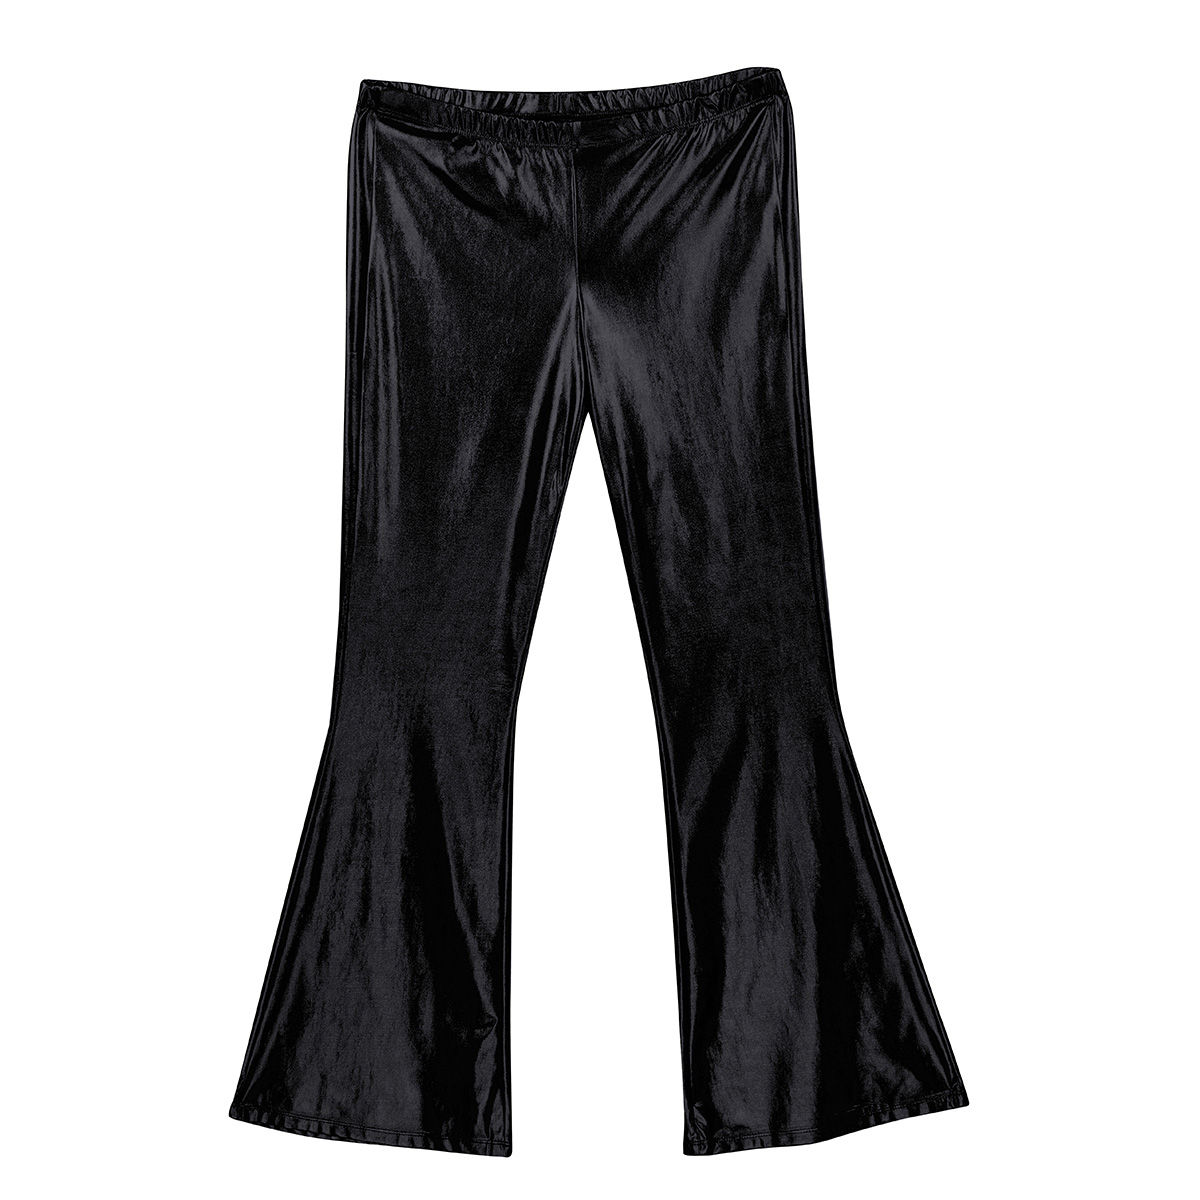 ChicTry Adults Mens Shiny Metallic Disco Pants with Bell Bottom Flared Long Pants Dude Costume Trousers for 70's Theme Parties 18